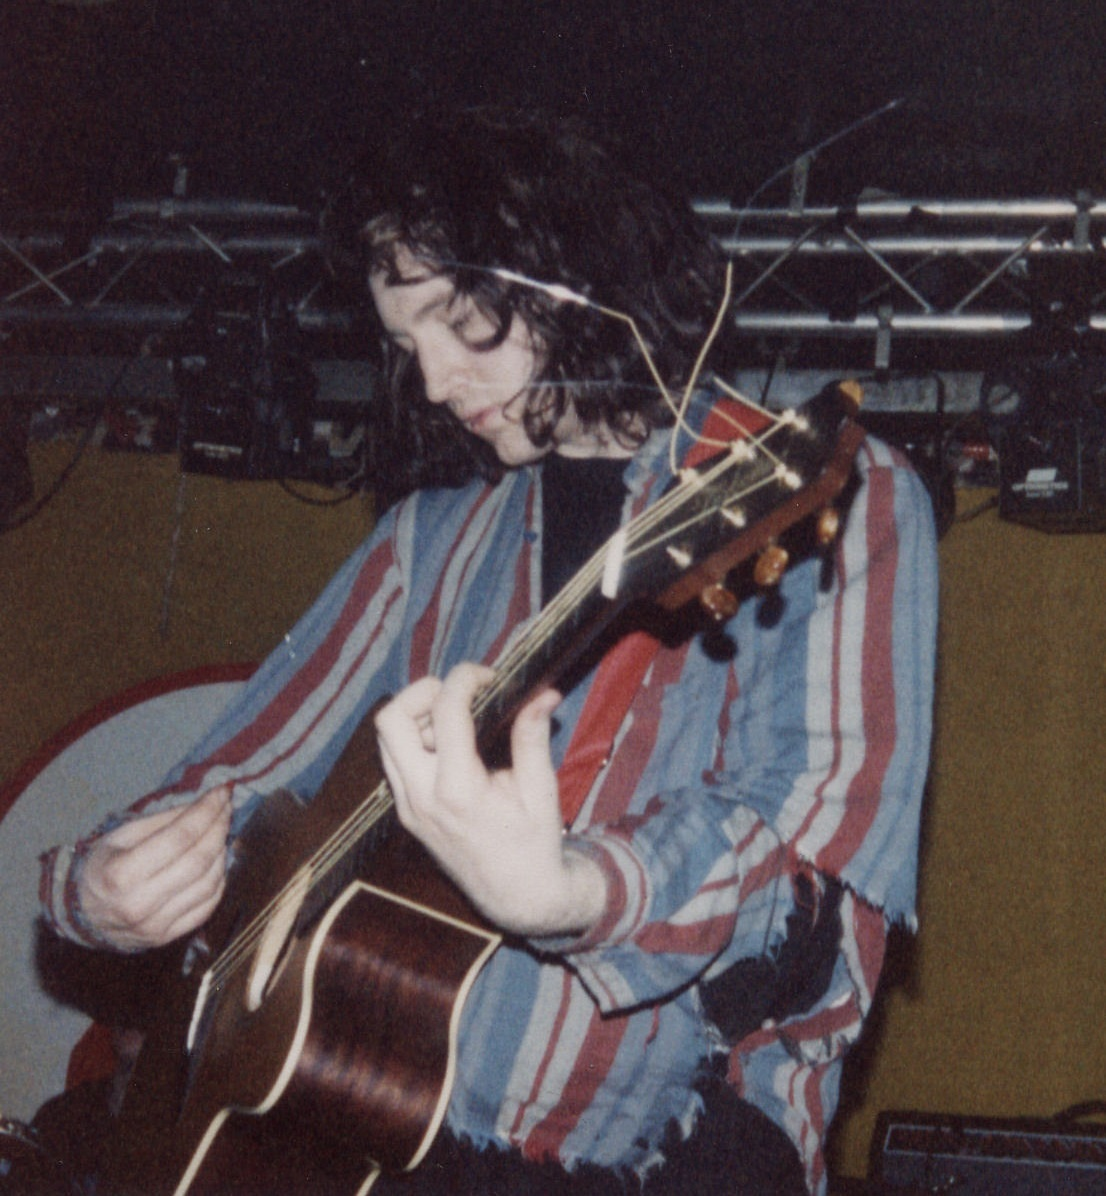 kevin shields and bilinda butcher relationship questions